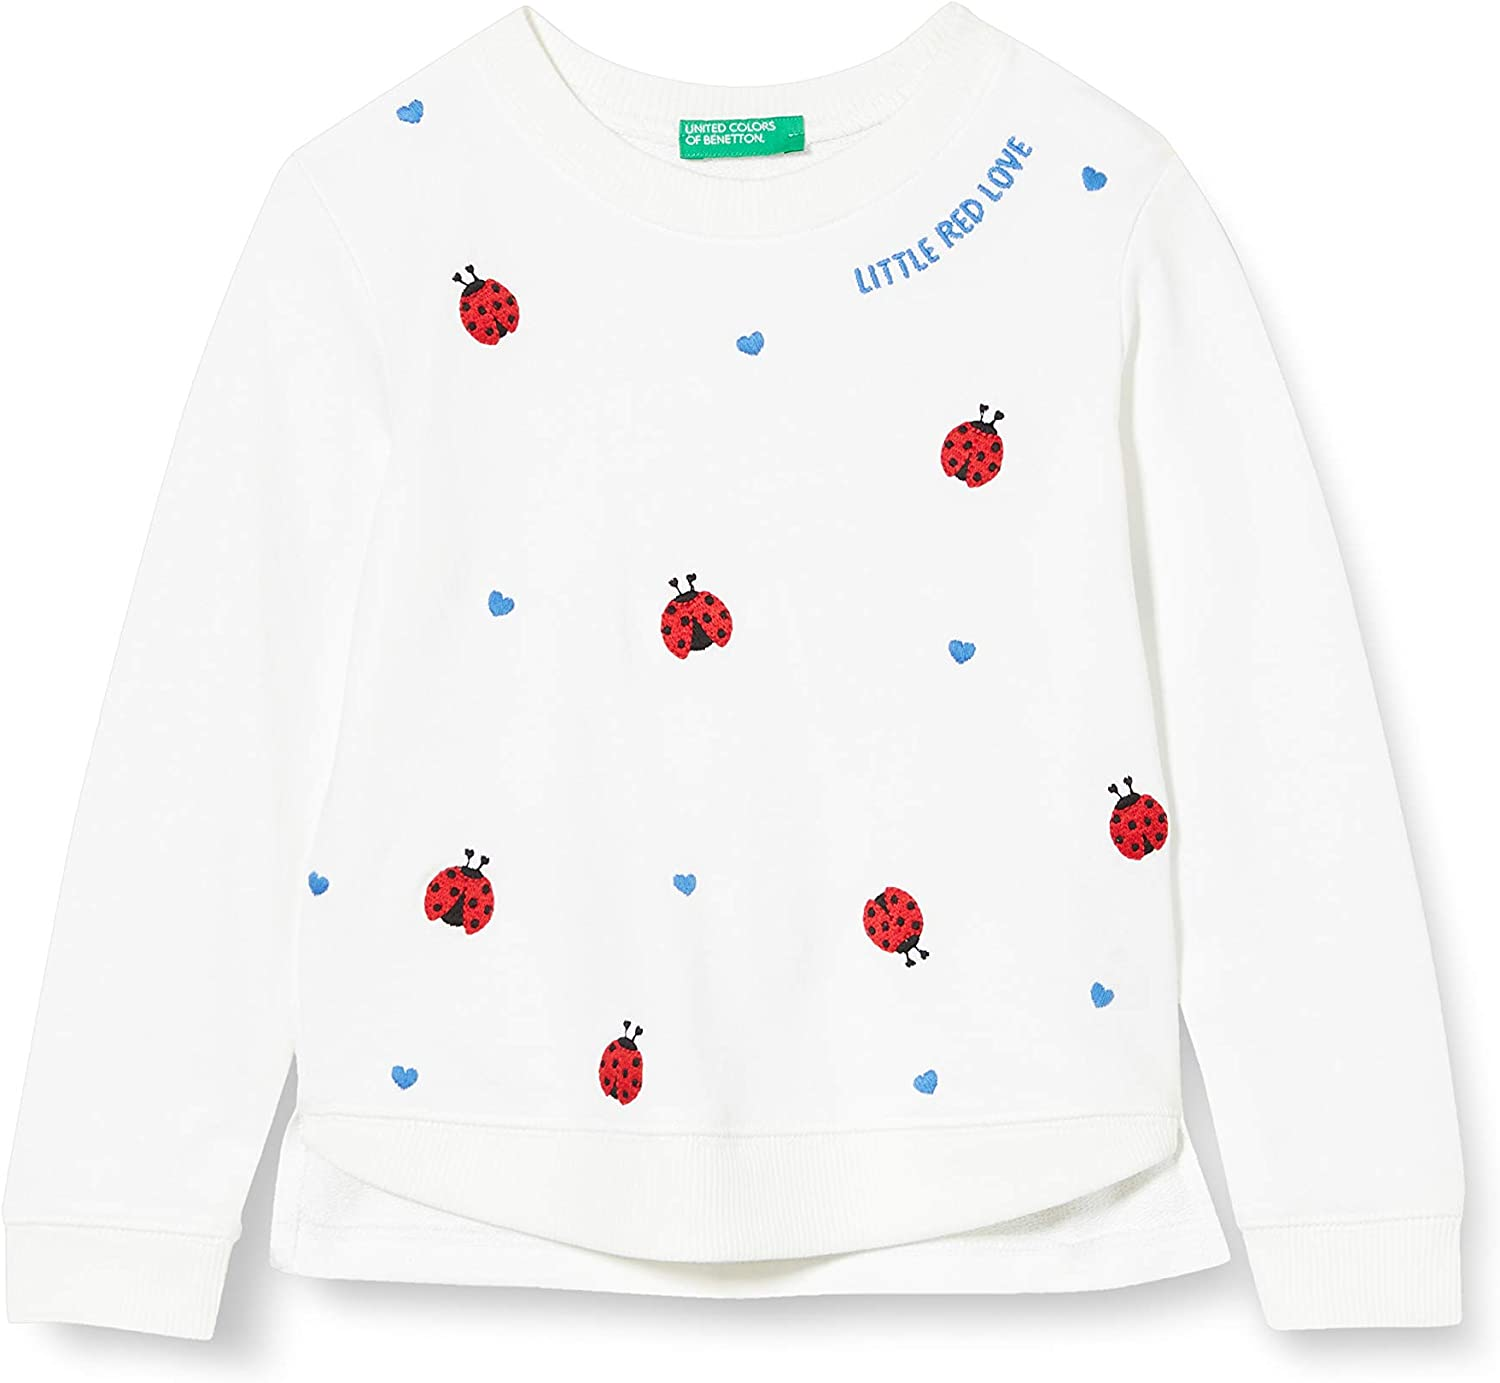 UNITED COLORS OF BENETTON Felpa Zip Gilet B/éb/é Fille